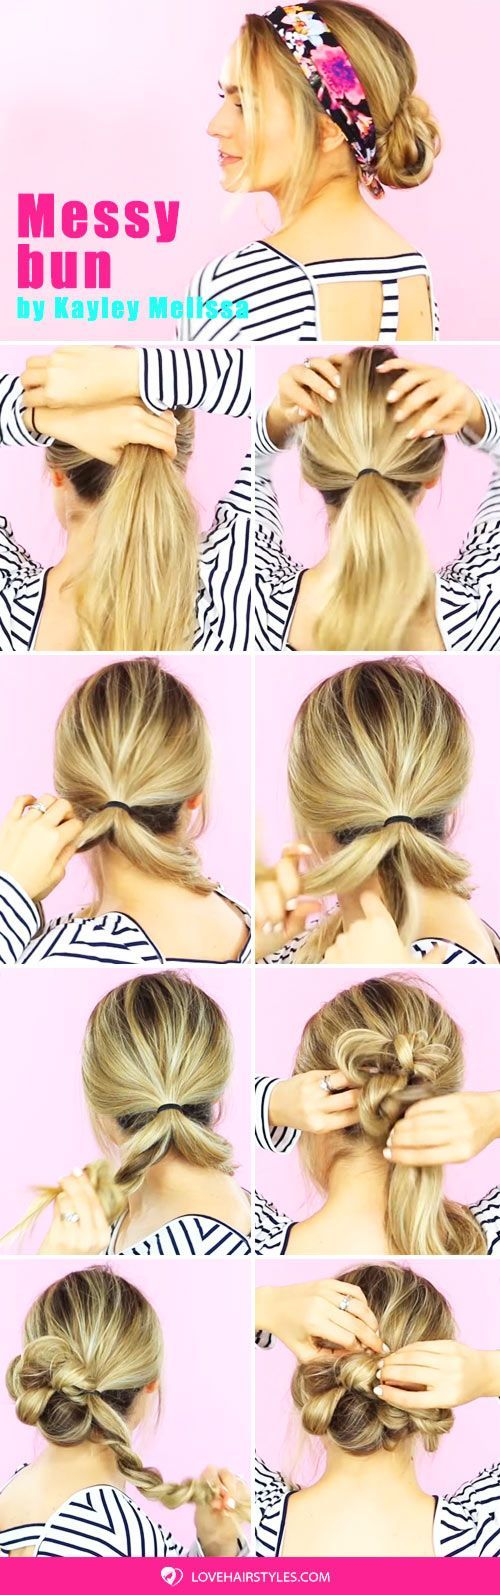 "A Messy Bun Tutorial <a class=""pintag"" href=""/explore/hairtutorial/"" title=""#hairtutorial explore Pinterest"">#hairtutorial</a> <a class=""pintag"" href=""/explore/bun/"" title=""#bun explore Pinterest"">#bun</a> ★ Cute and easy bun hairstyles for short hair, shoulder length or for long hair. Pick a formal one for work or fancy events. ★ See more: <a href=""https://glaminati.com/bun-hairstyles/"" rel=""nofollow"" target=""_blank"">glaminati.com/…</a> <a class=""pintag"" href=""/explore/glaminati/"" title=""#glaminati explore Pinterest"">#glaminati</a> <a class=""pintag"" href=""/explore/lifestyle/"" title=""#lifestyle explore Pinterest"">#lifestyle</a><p><a href=""http://www.homeinteriordesign.org/2018/02/short-guide-to-interior-decoration.html"">Short guide to interior decoration</a></p>"